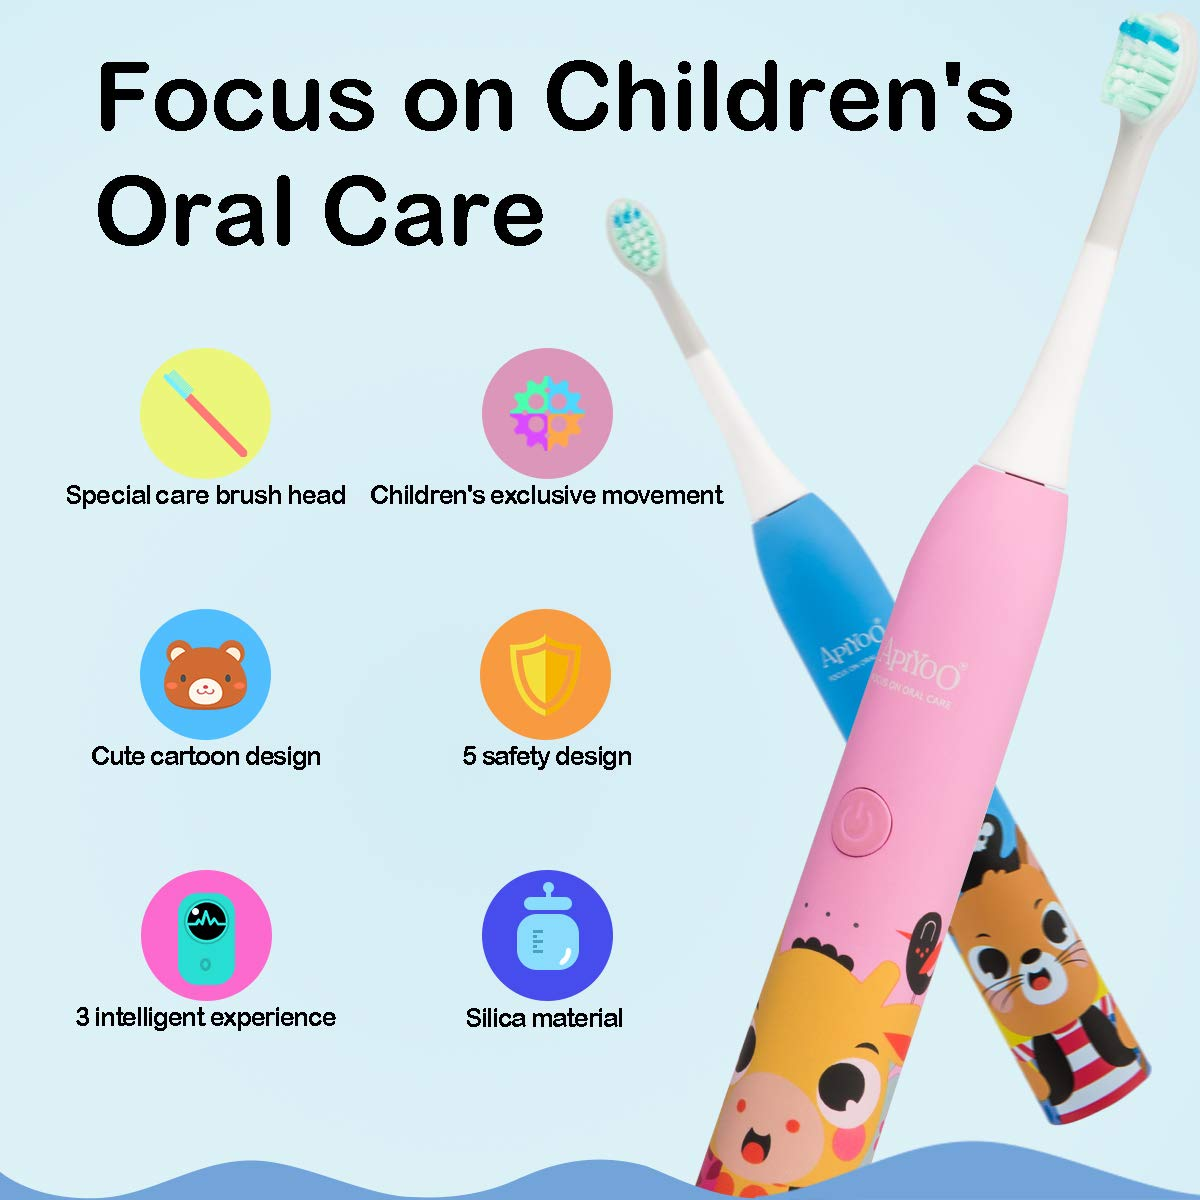 Apiyoo Kids Electric Toothbrush, A7 Sonic Wireless Rechargeable Toothbrush, IPX7 Waterproof with 3 Brushing Modes, 2 Min Smart Timer for Kids. (Pink) by Apiyoo (Image #2)